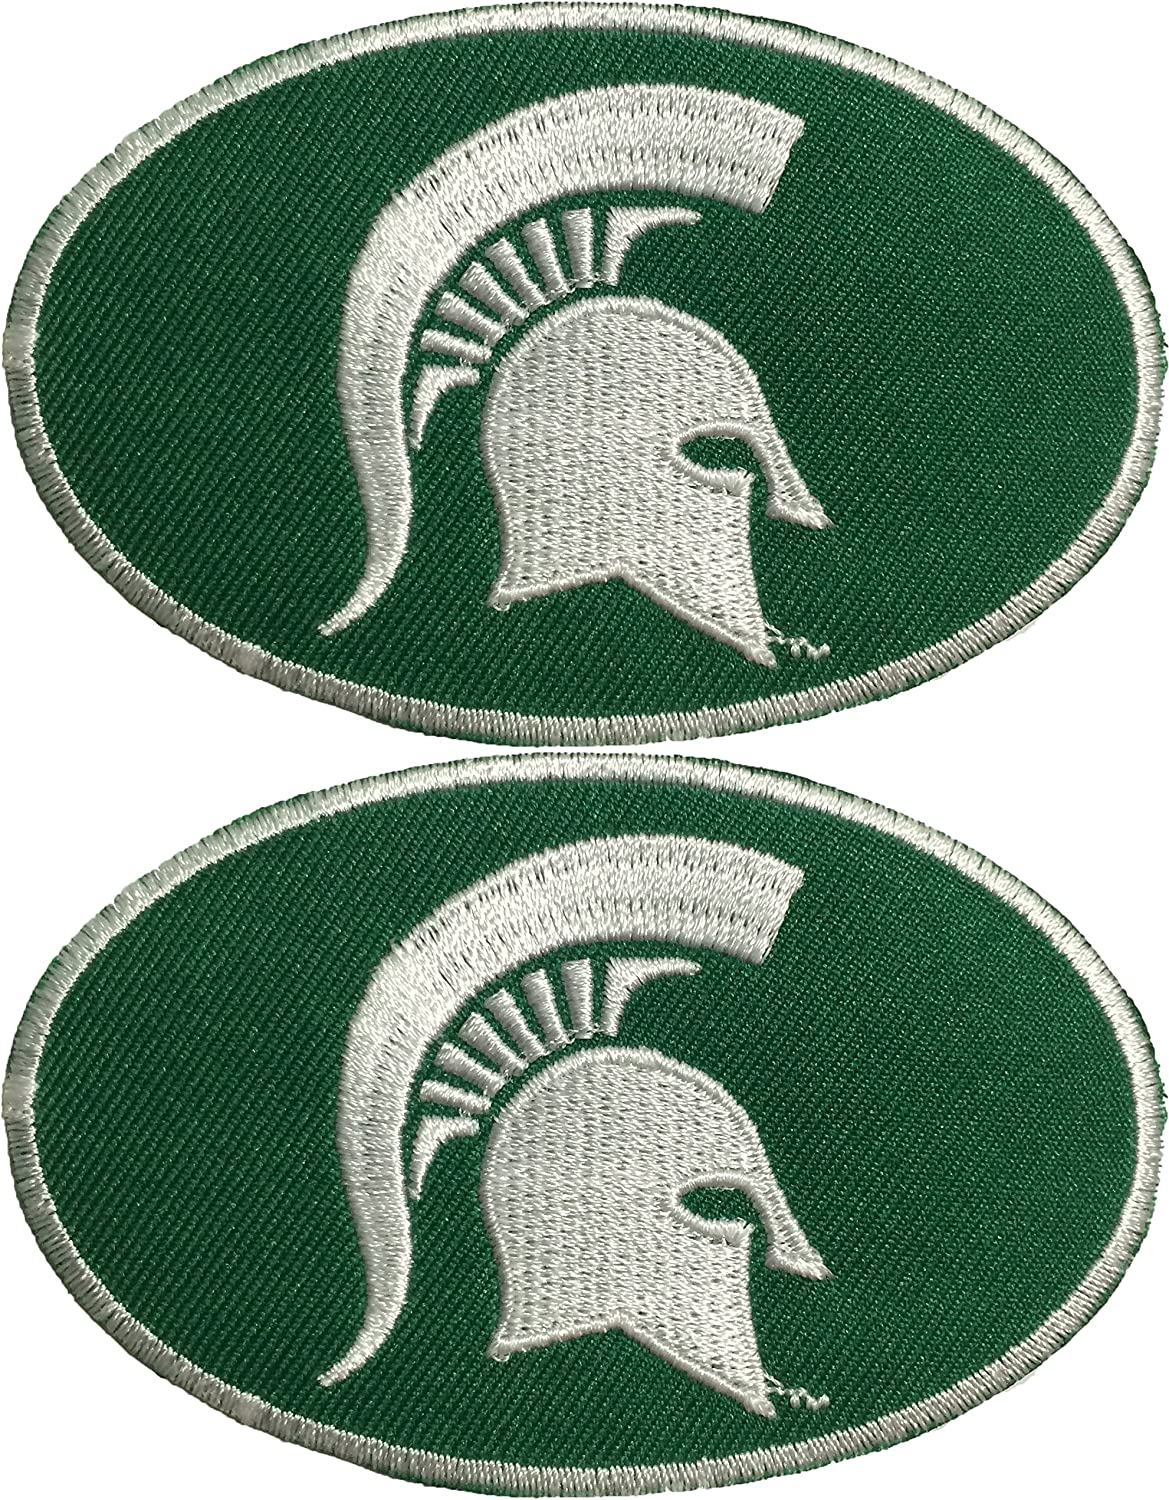 Michigan State University Iron On fabric appliques Sports